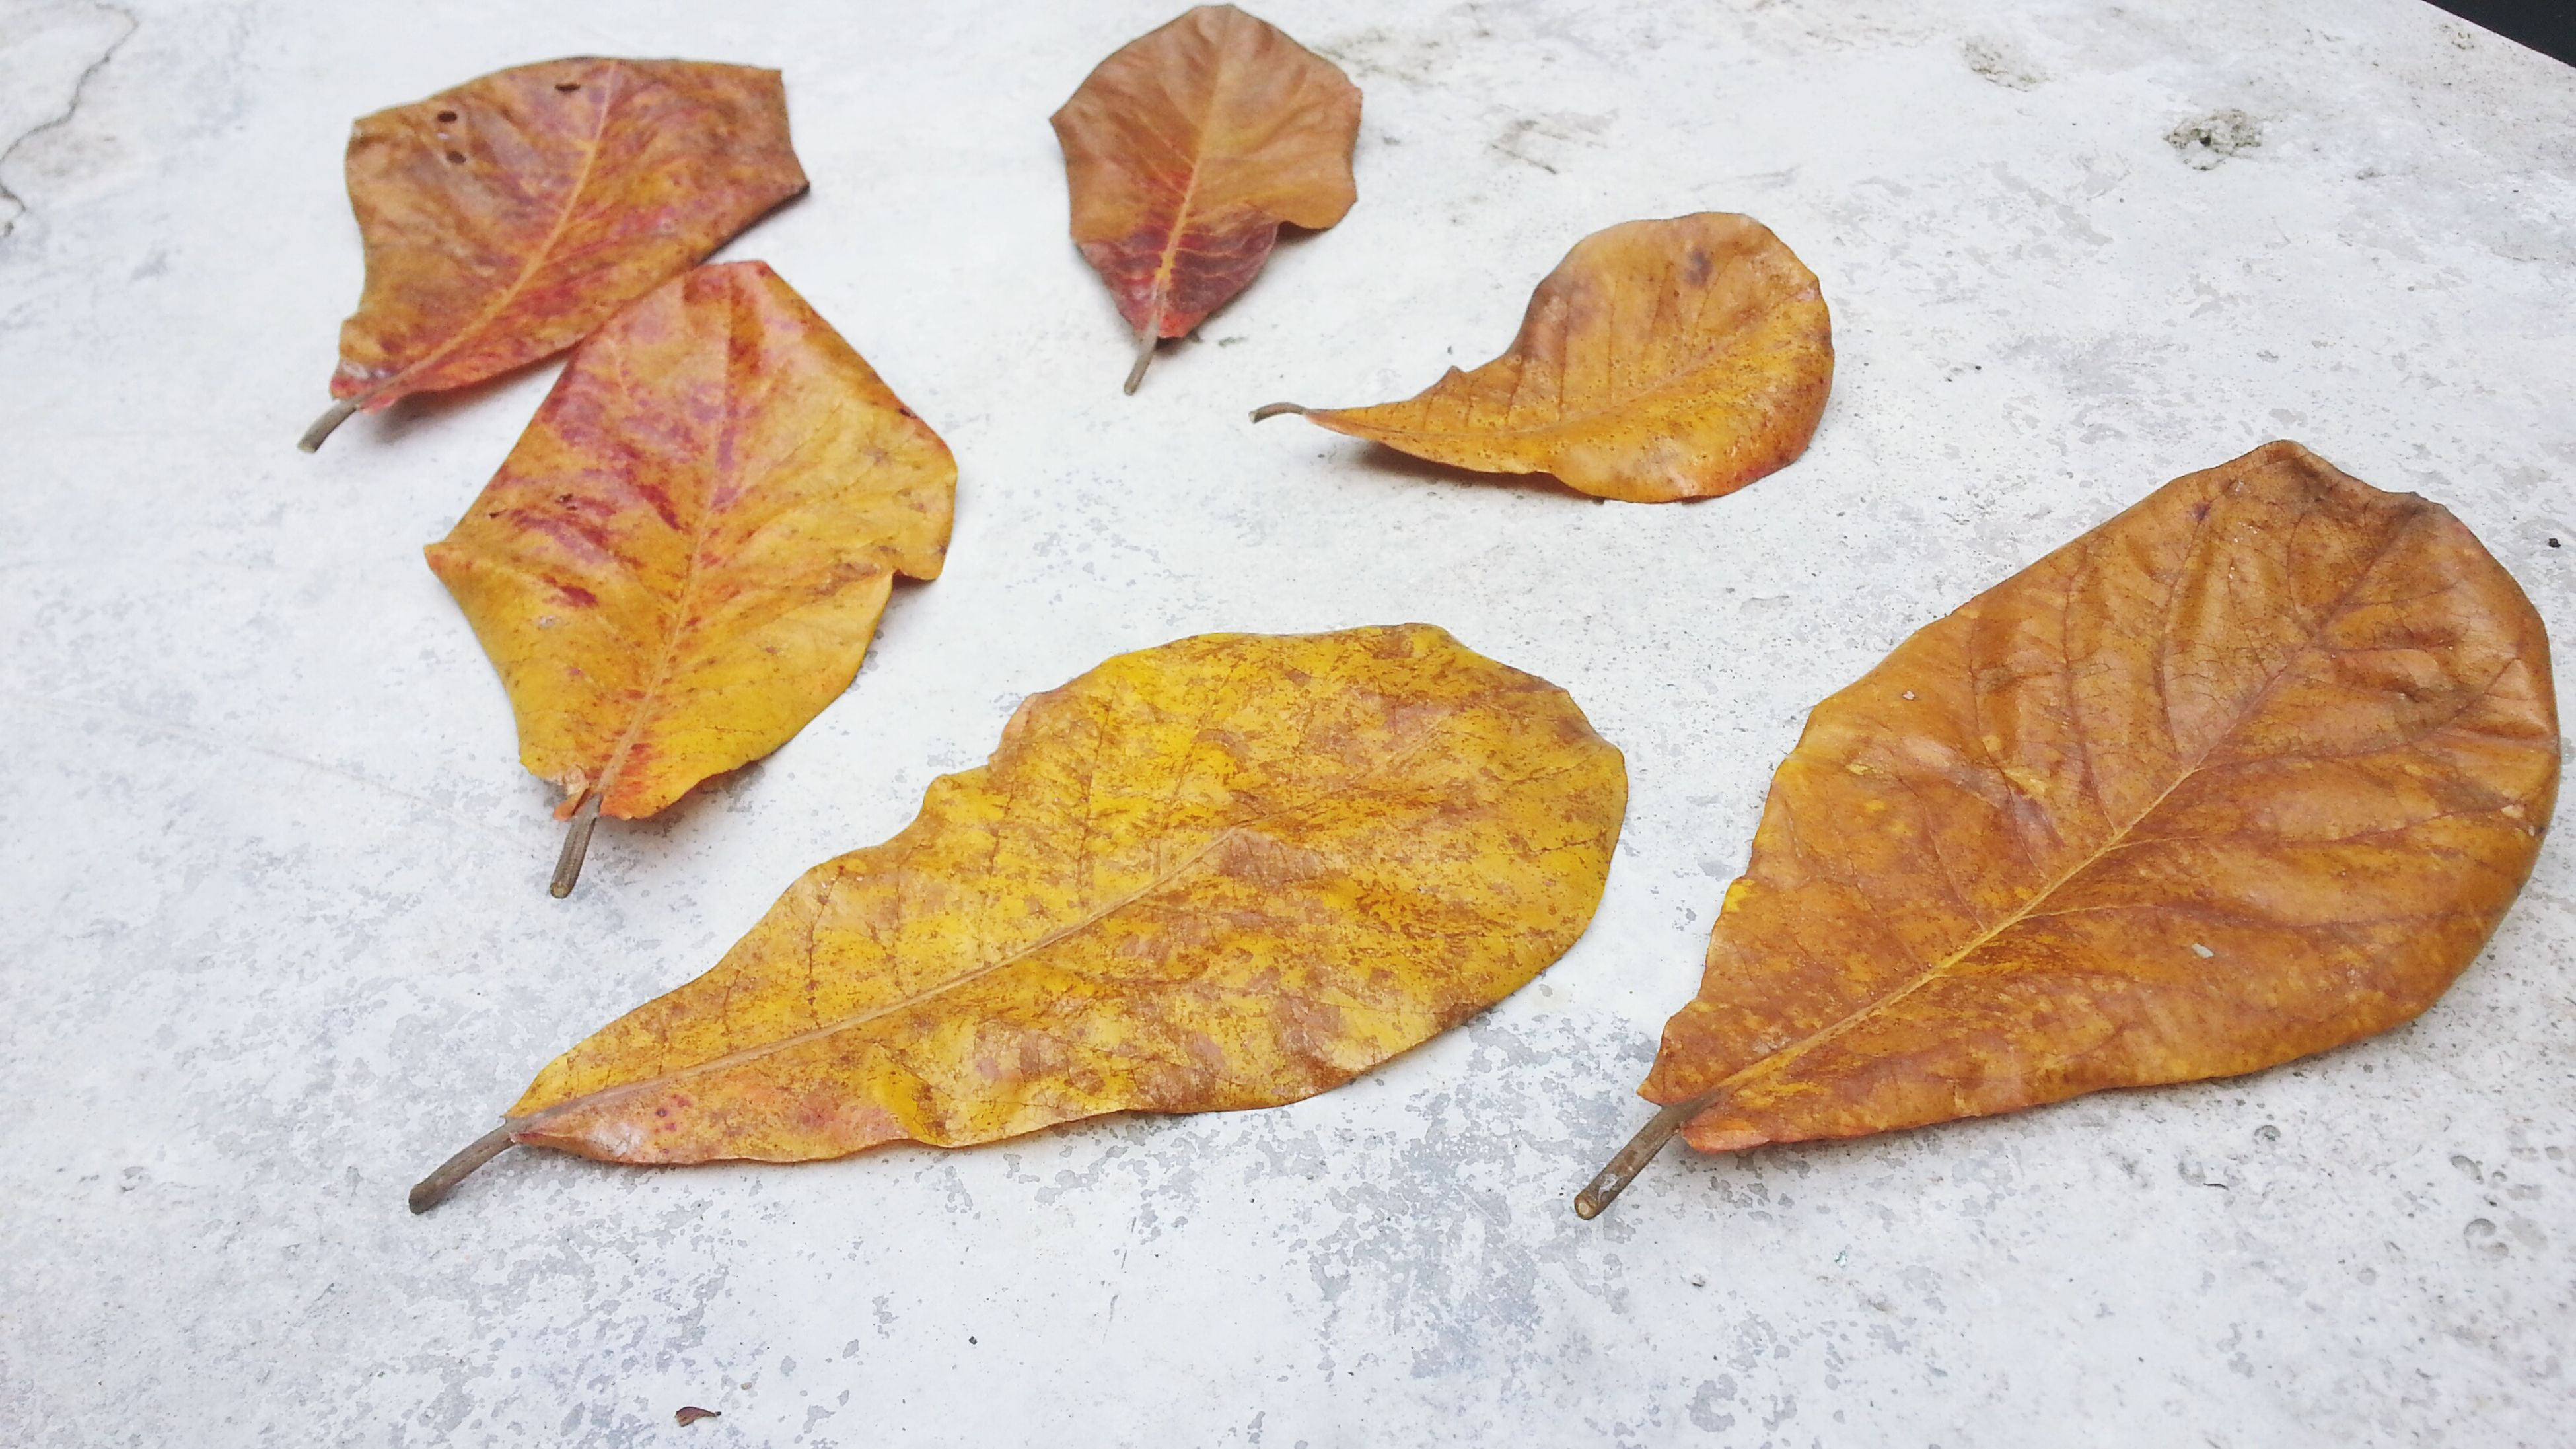 leaf, autumn, change, season, leaf vein, leaves, dry, close-up, maple leaf, natural pattern, nature, natural condition, fallen, high angle view, yellow, orange color, day, fragility, no people, aging process